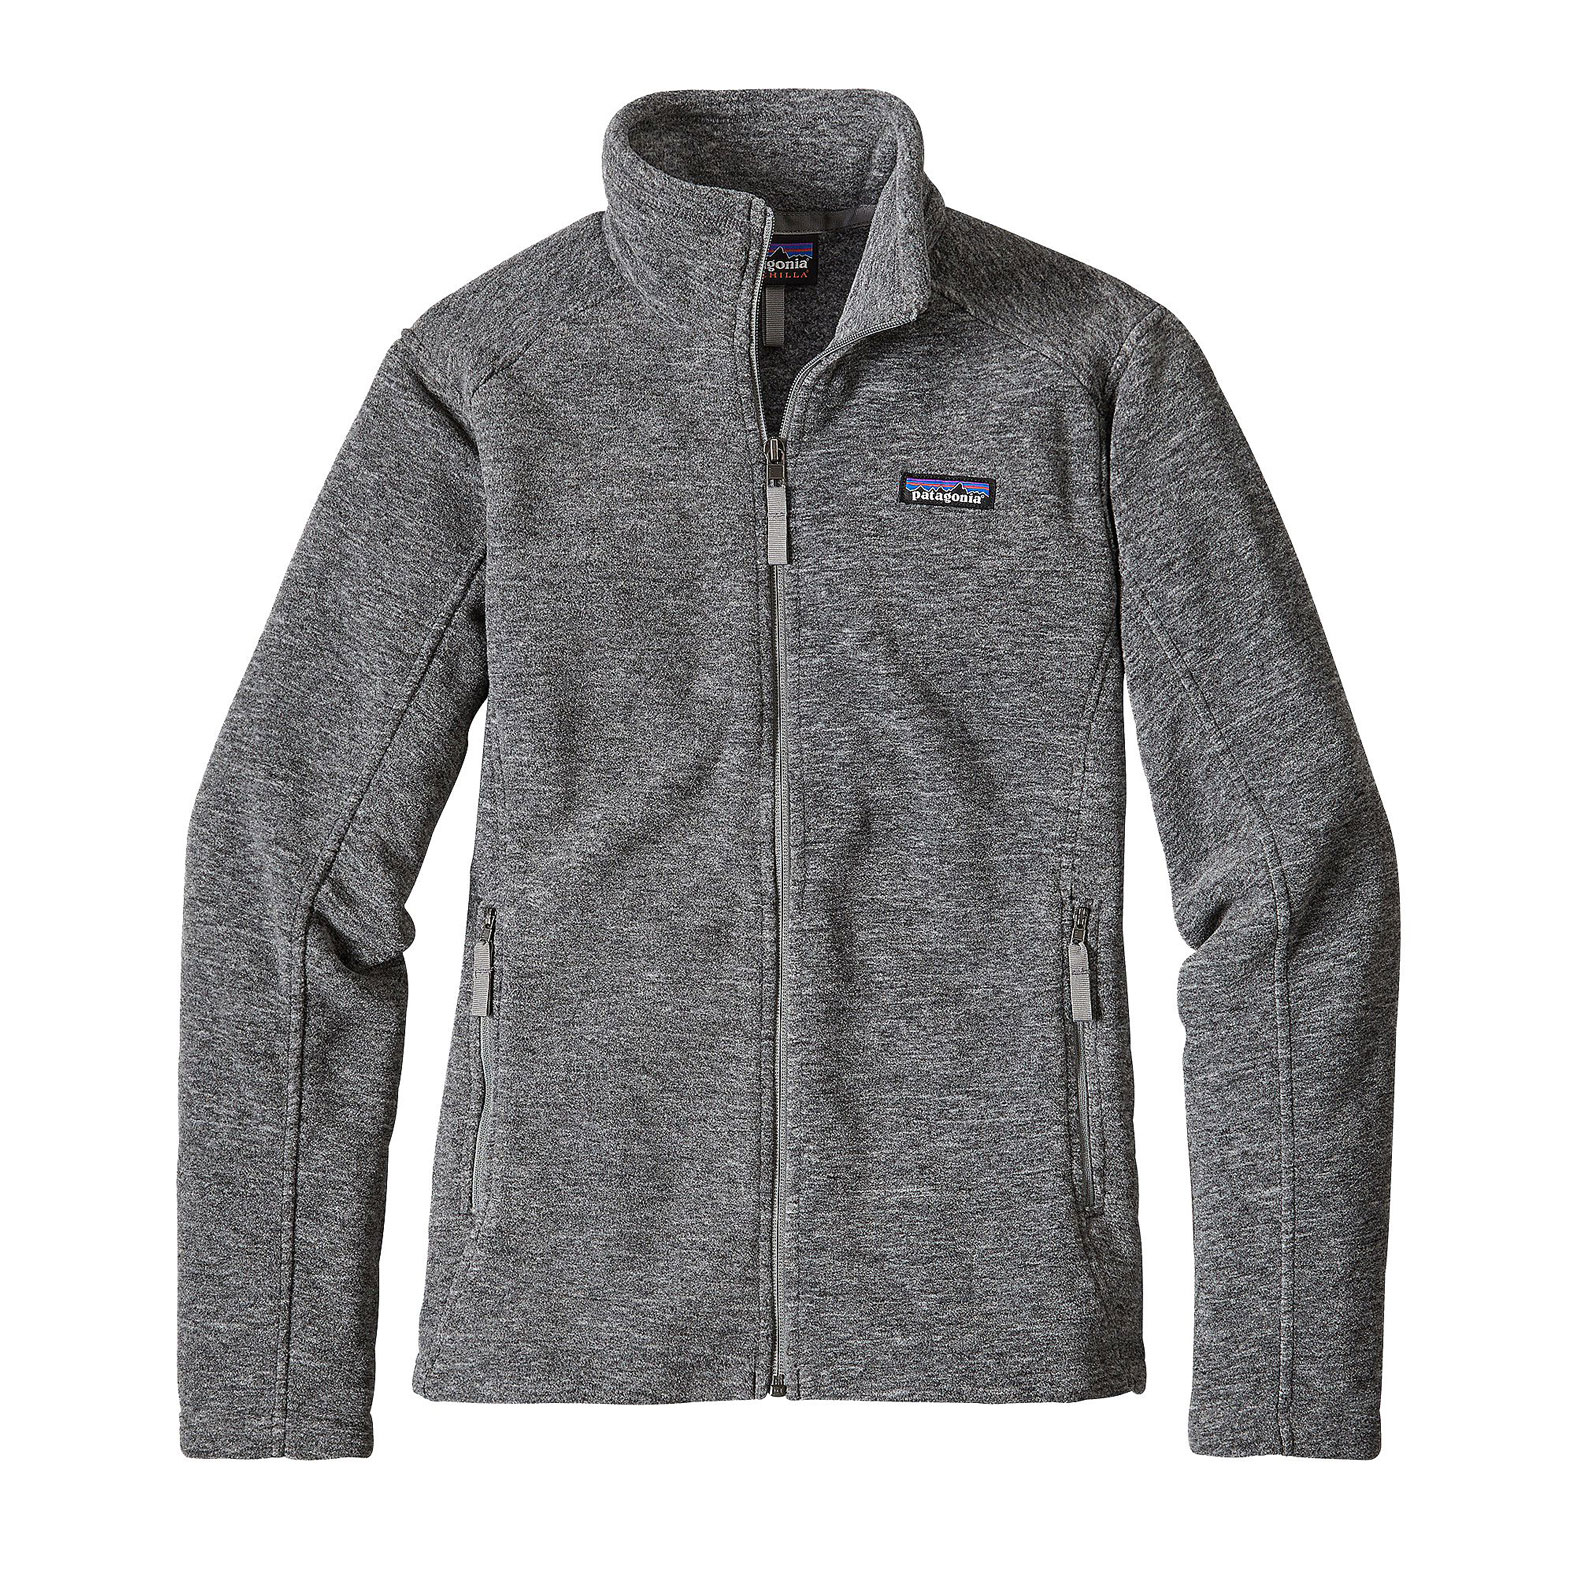 Womens Classic Synchilla® Jacket by Patagonia